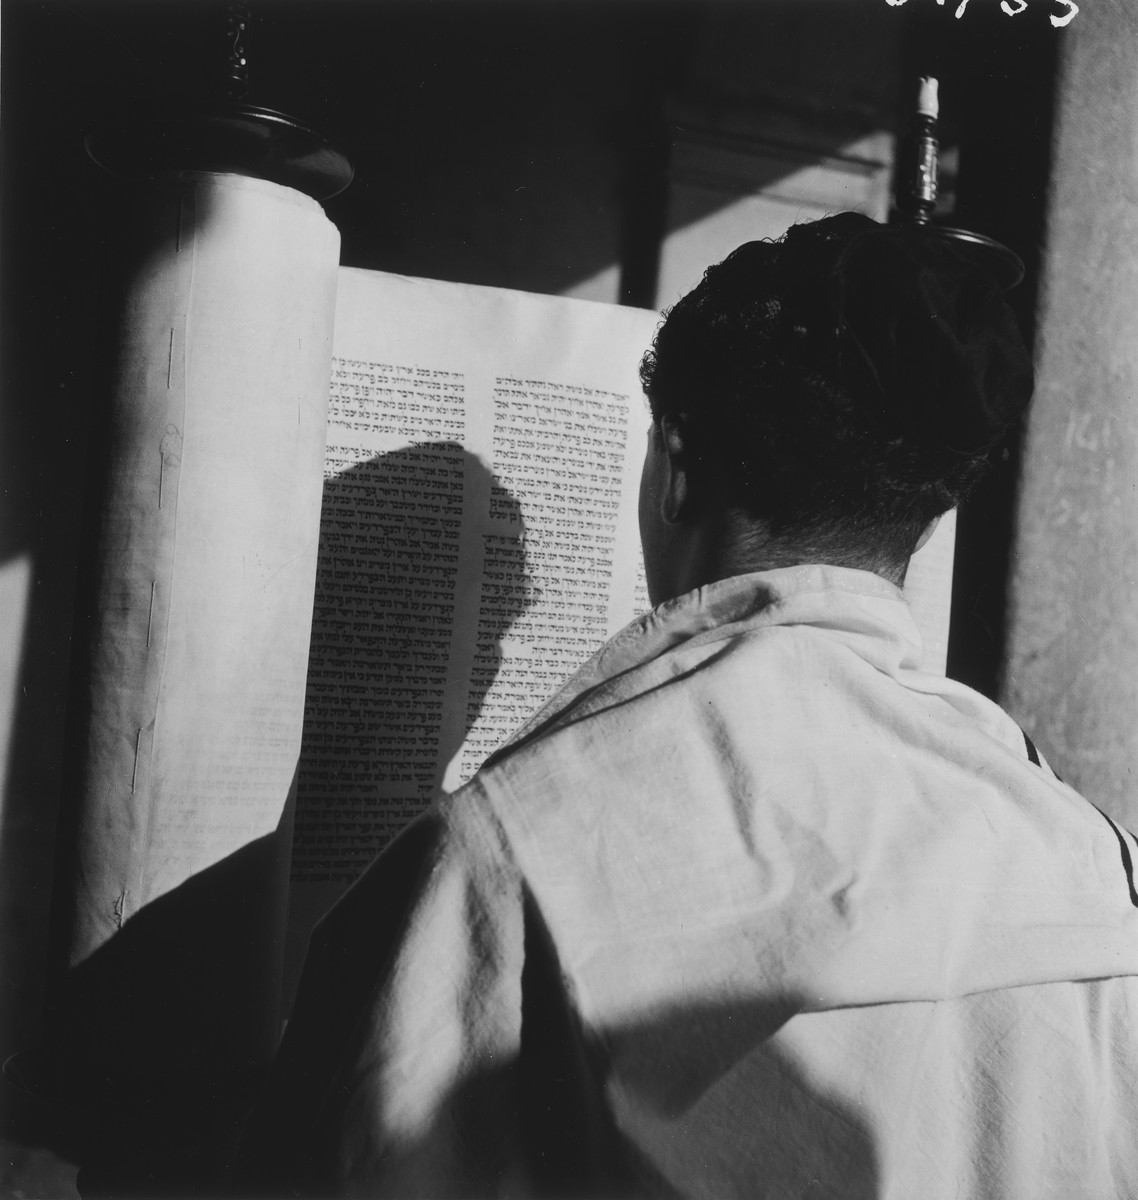 A teenager wrapped in a prayer shawl lifts up the torah scroll during religious services in an unidentified post-war OSE children's home.